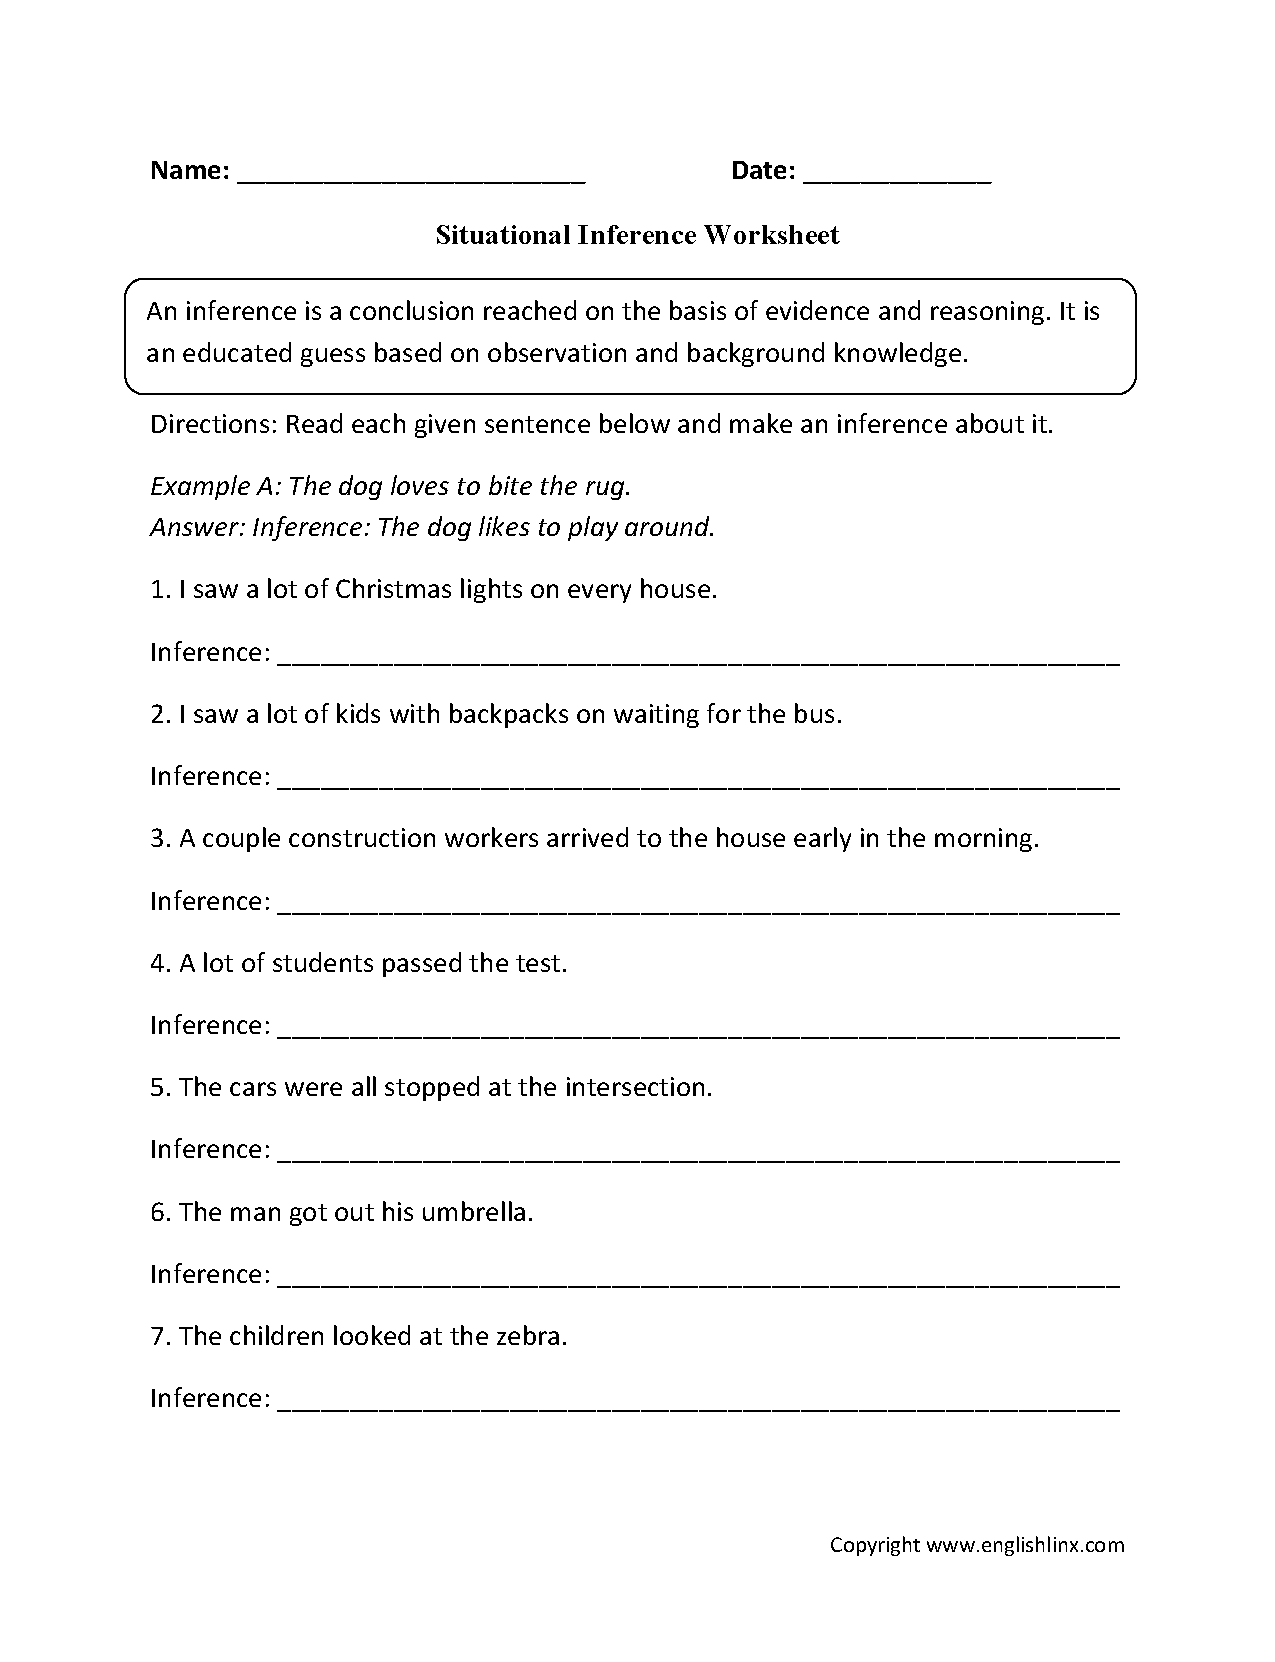 hight resolution of Situational Inference Worksheets   Reading comprehension worksheets